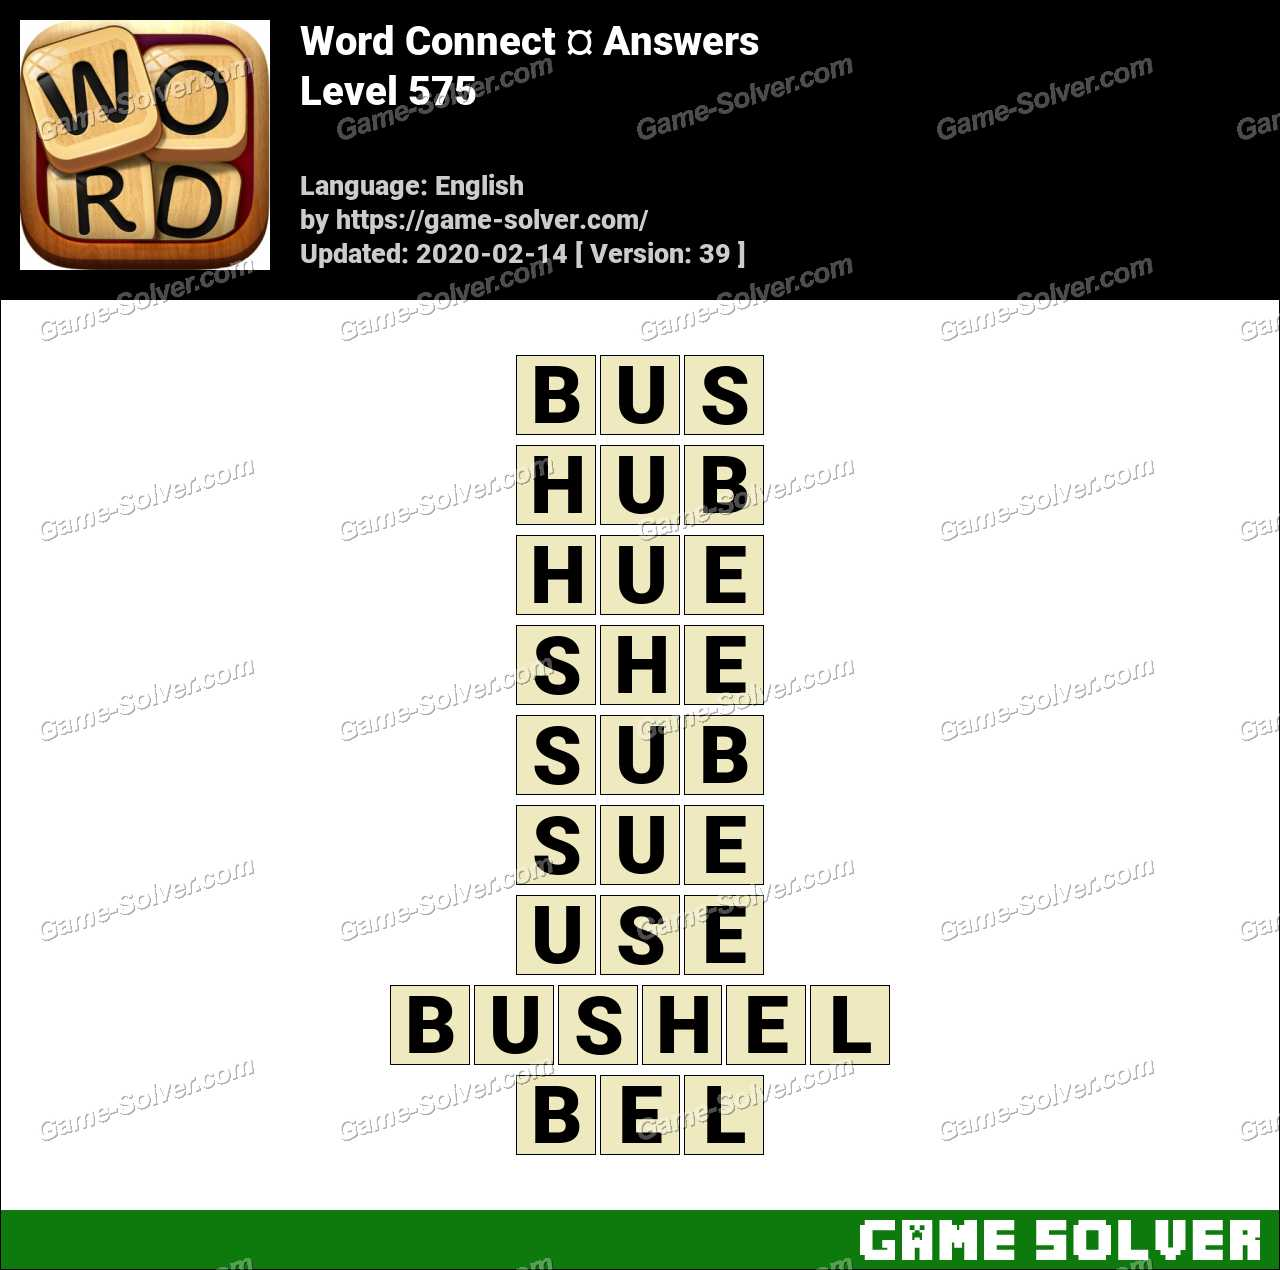 Word Connect Level 575 Answers